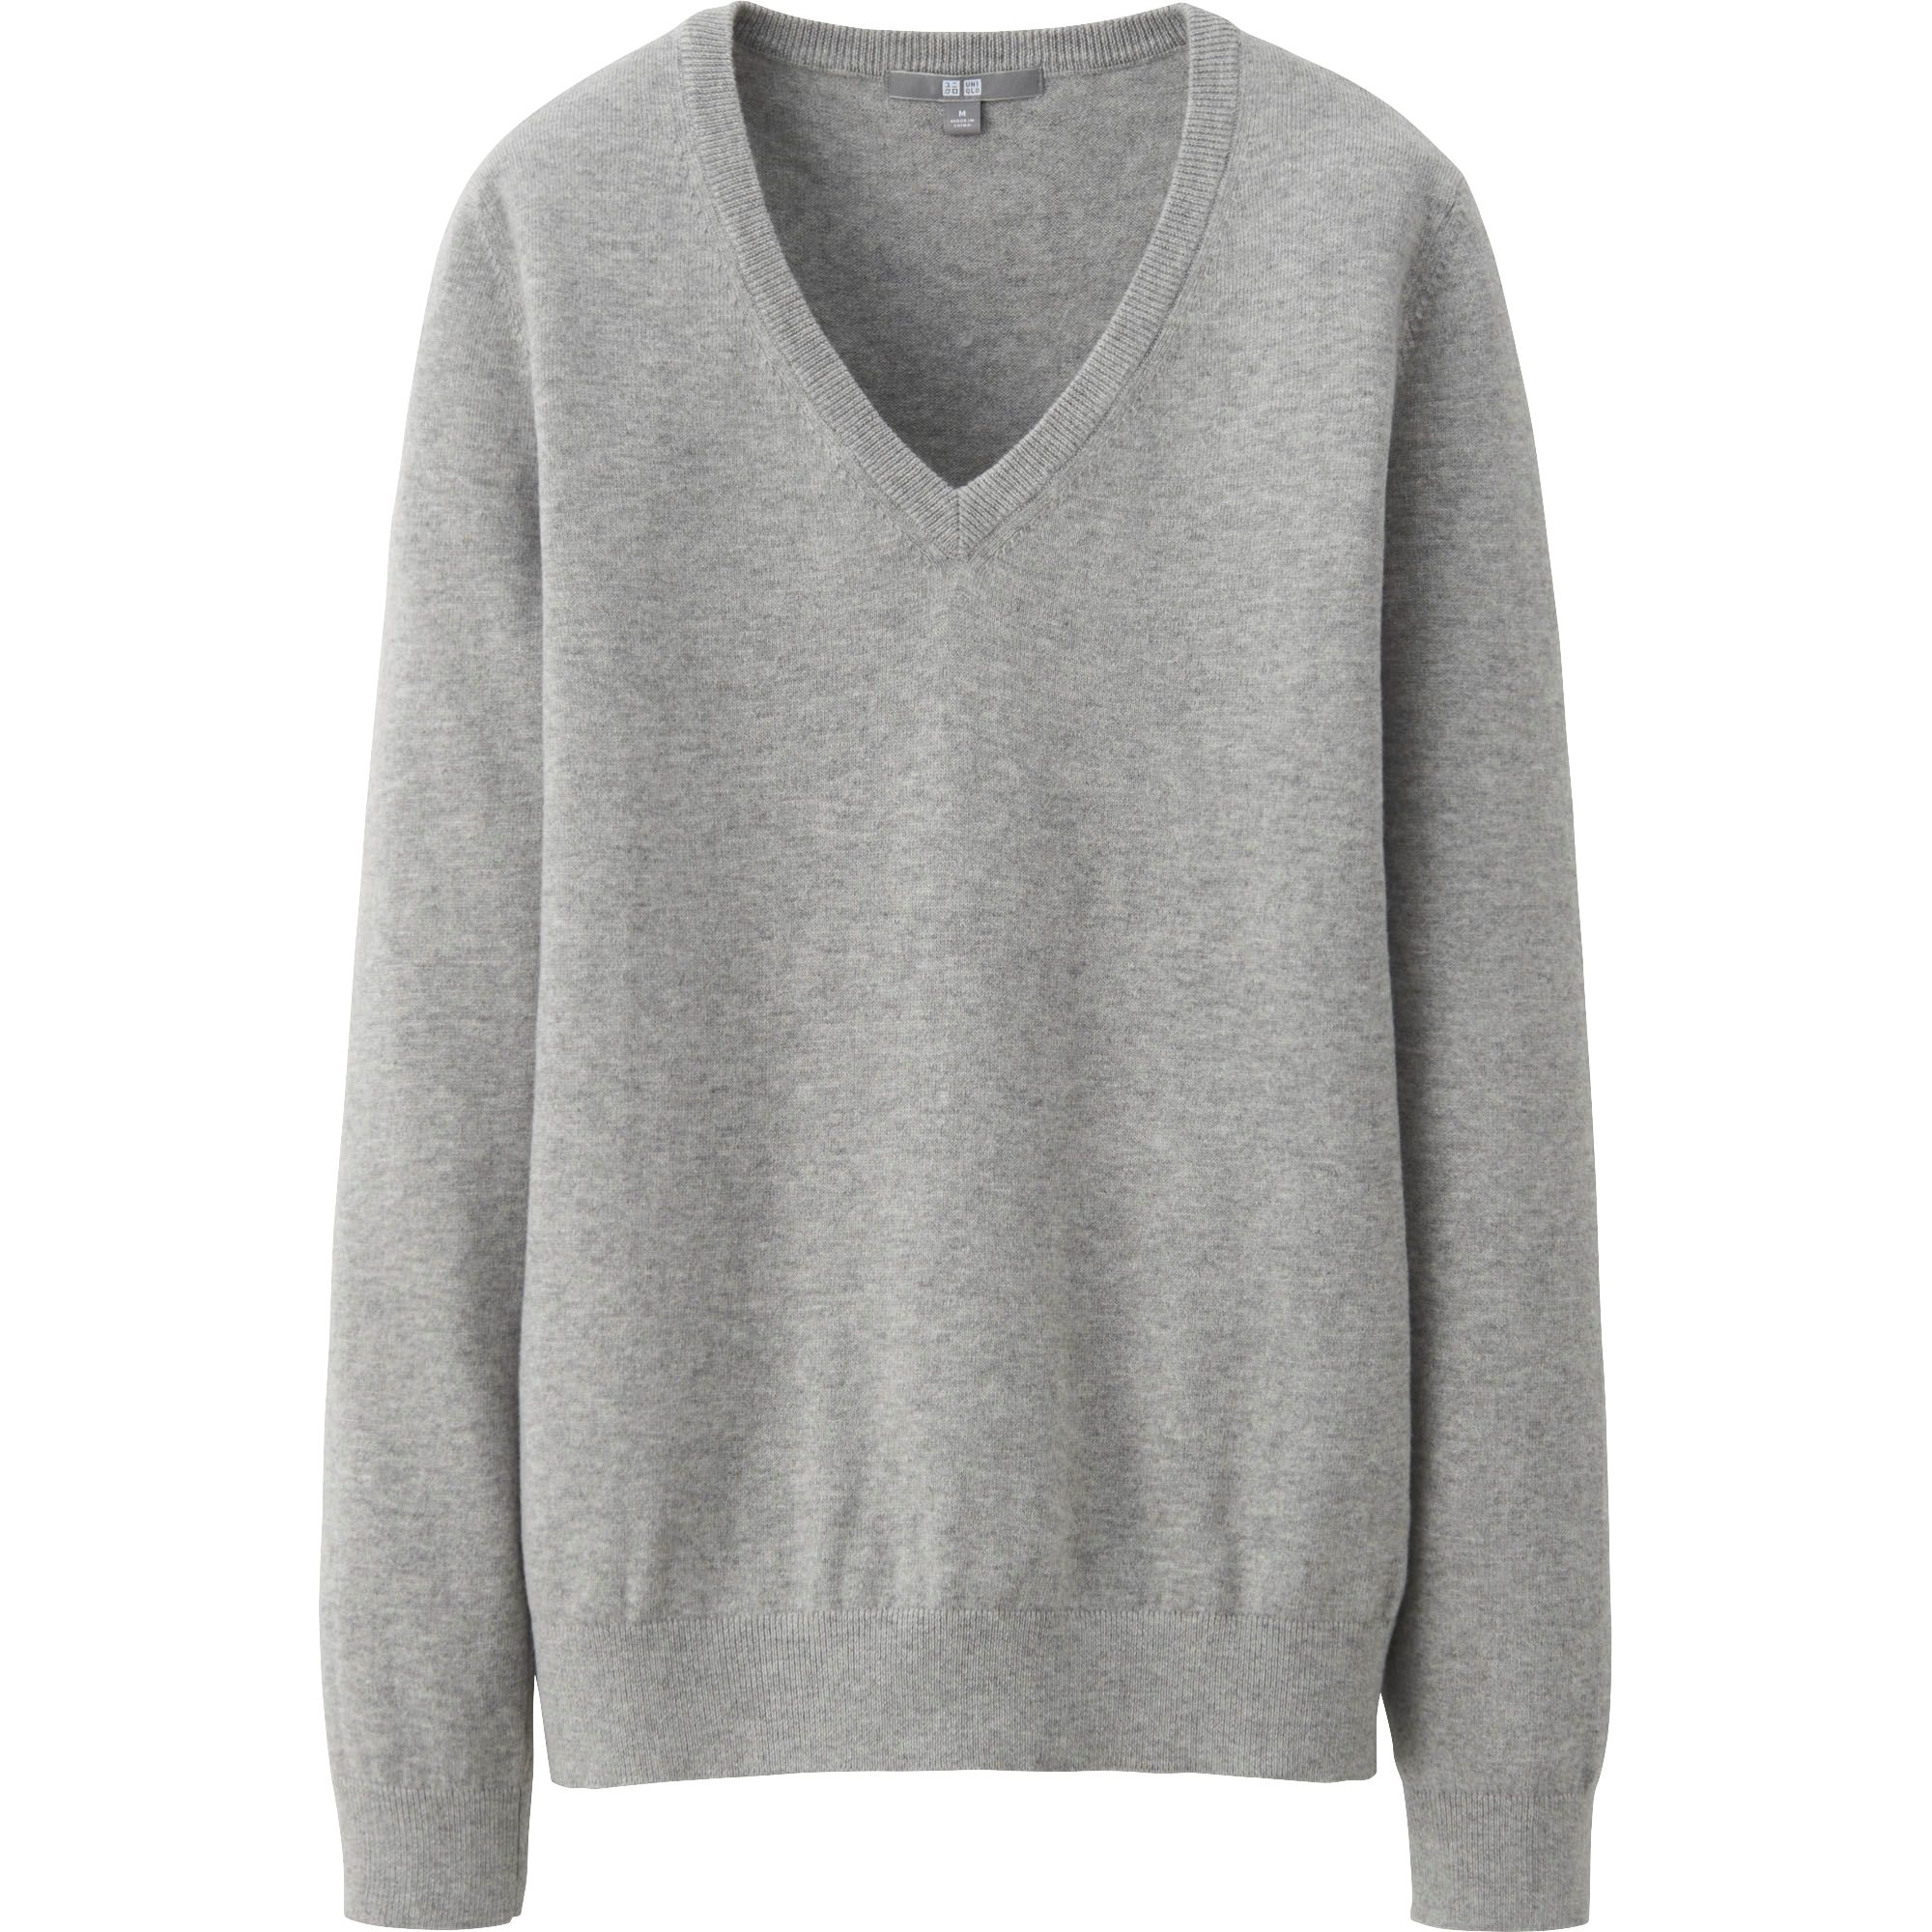 Grey Cotton Sweater For Women - Cashmere Sweater England